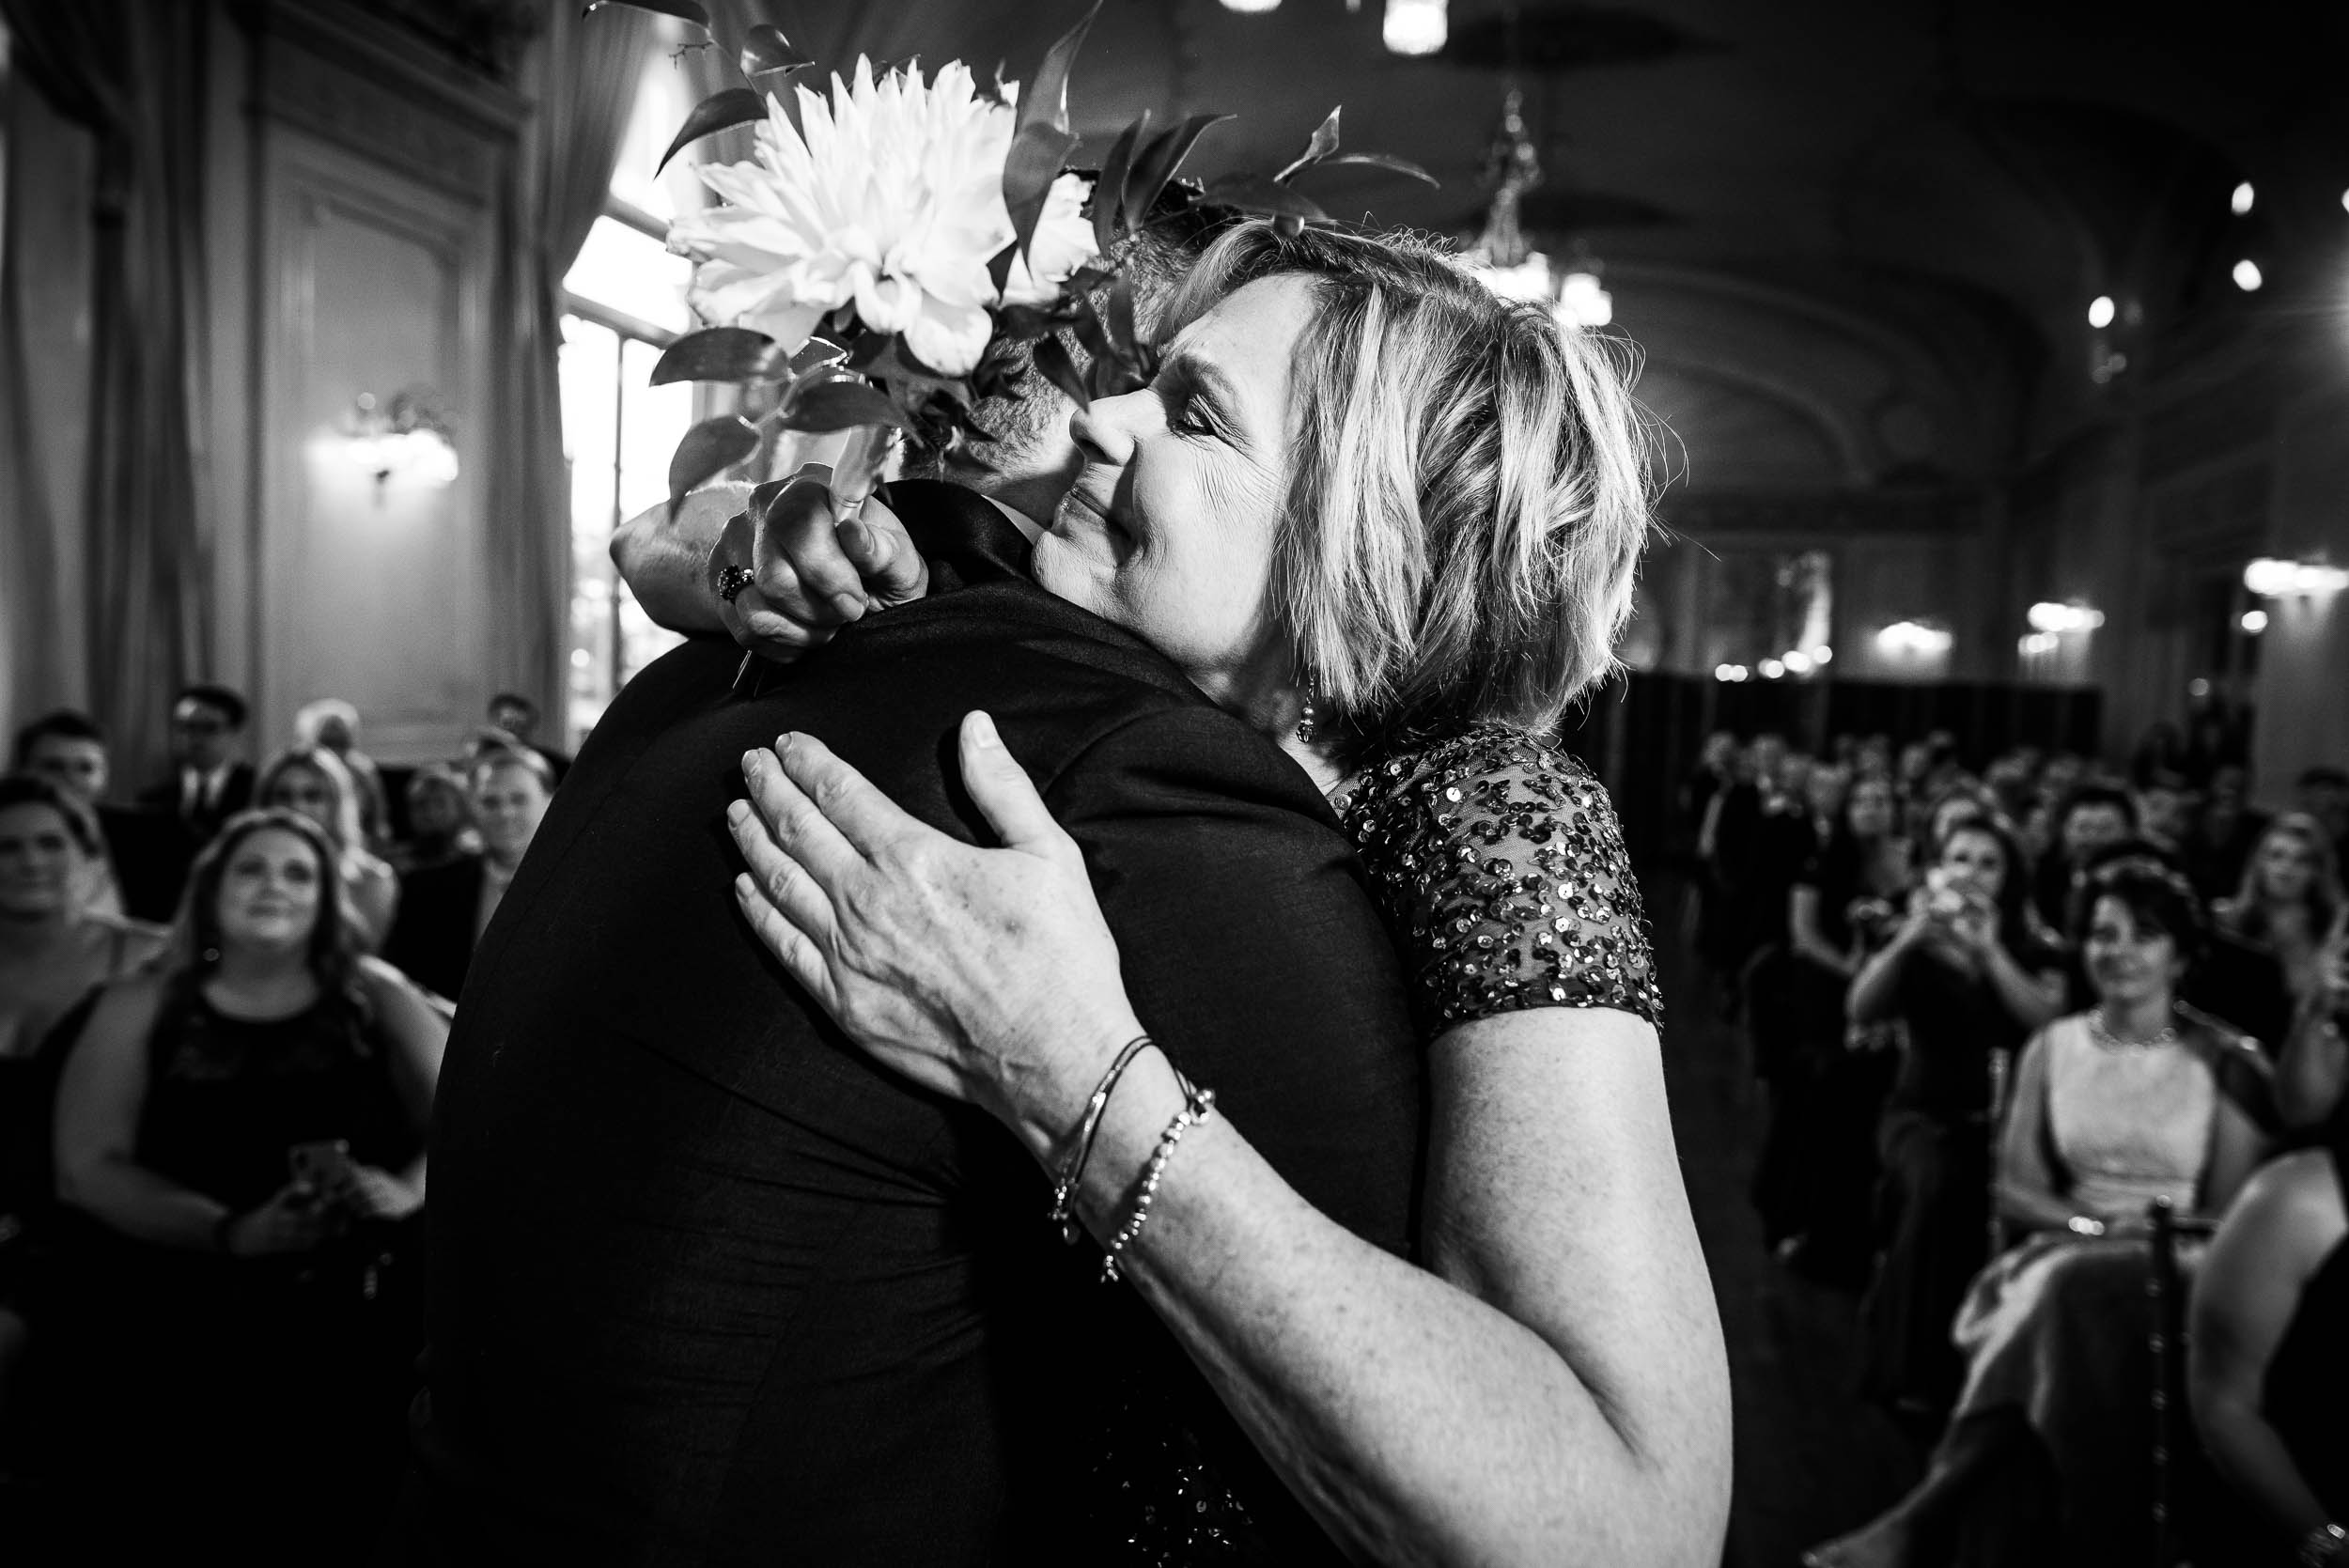 Emotional wedding photos from luxurious fall wedding at the Chicago Symphony Center captured by J. Brown Photography. See more wedding ideas at jbrownphotography.com!